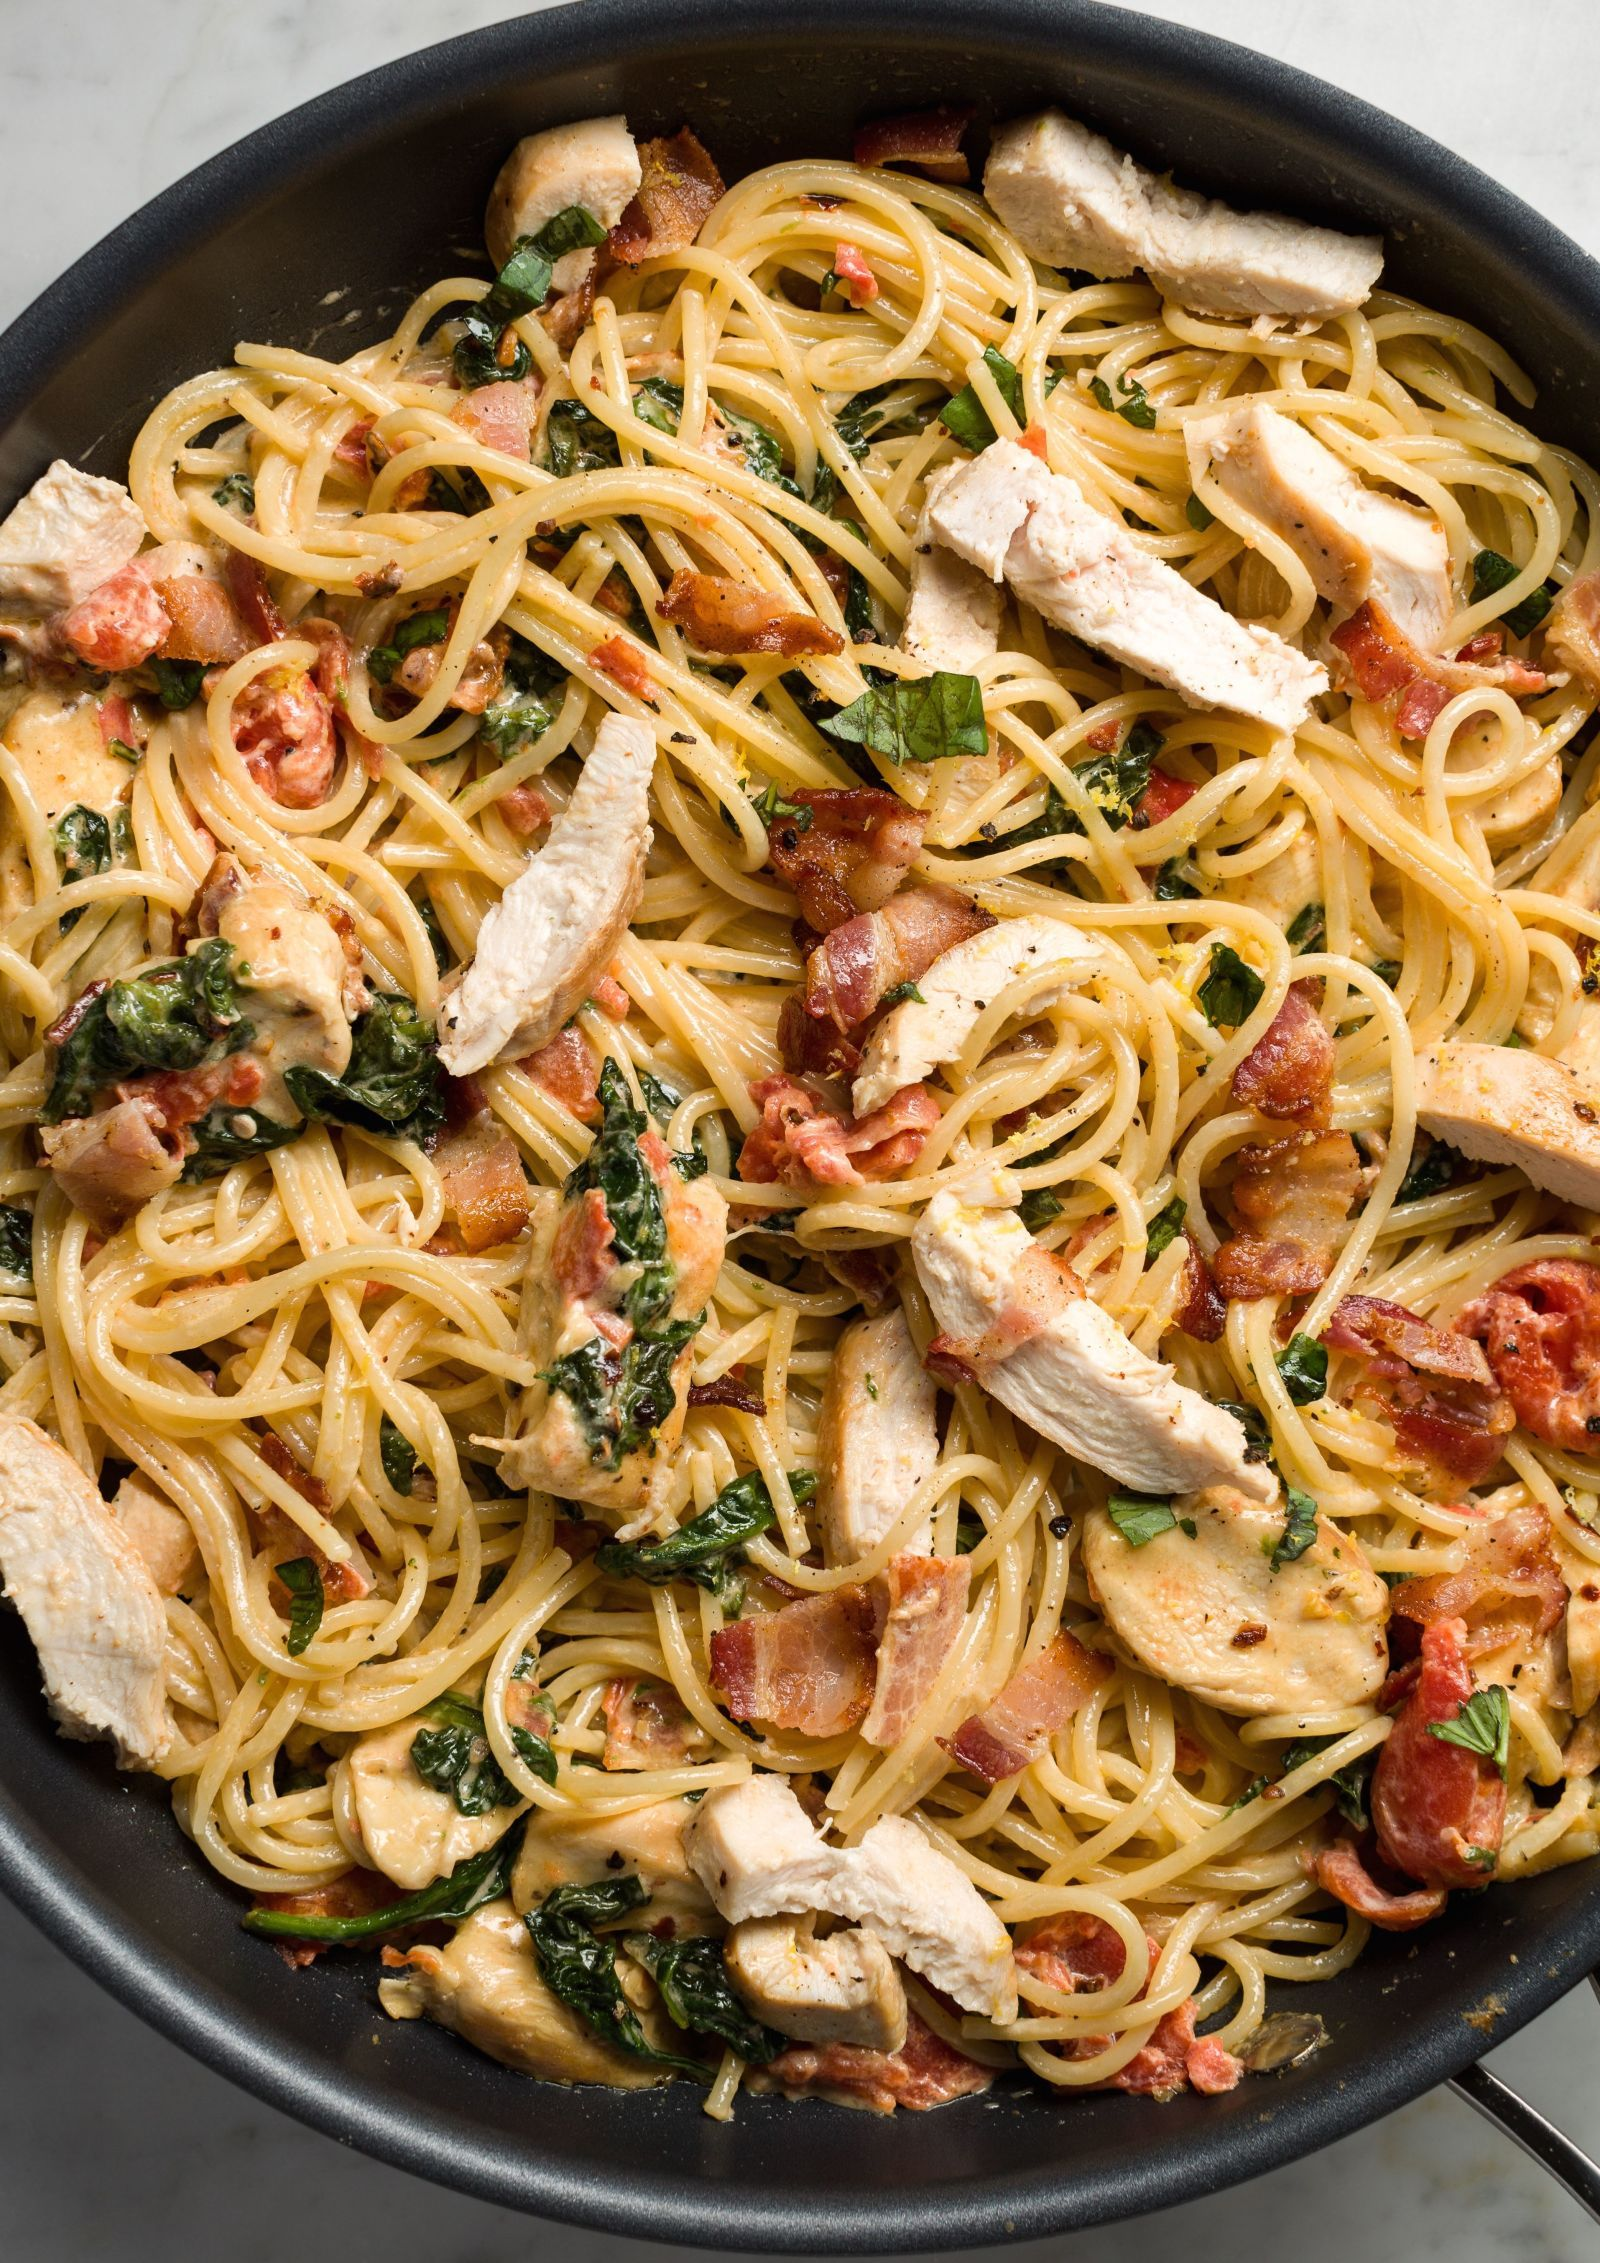 Chicken, Bacon, and Spinach Spaghetti